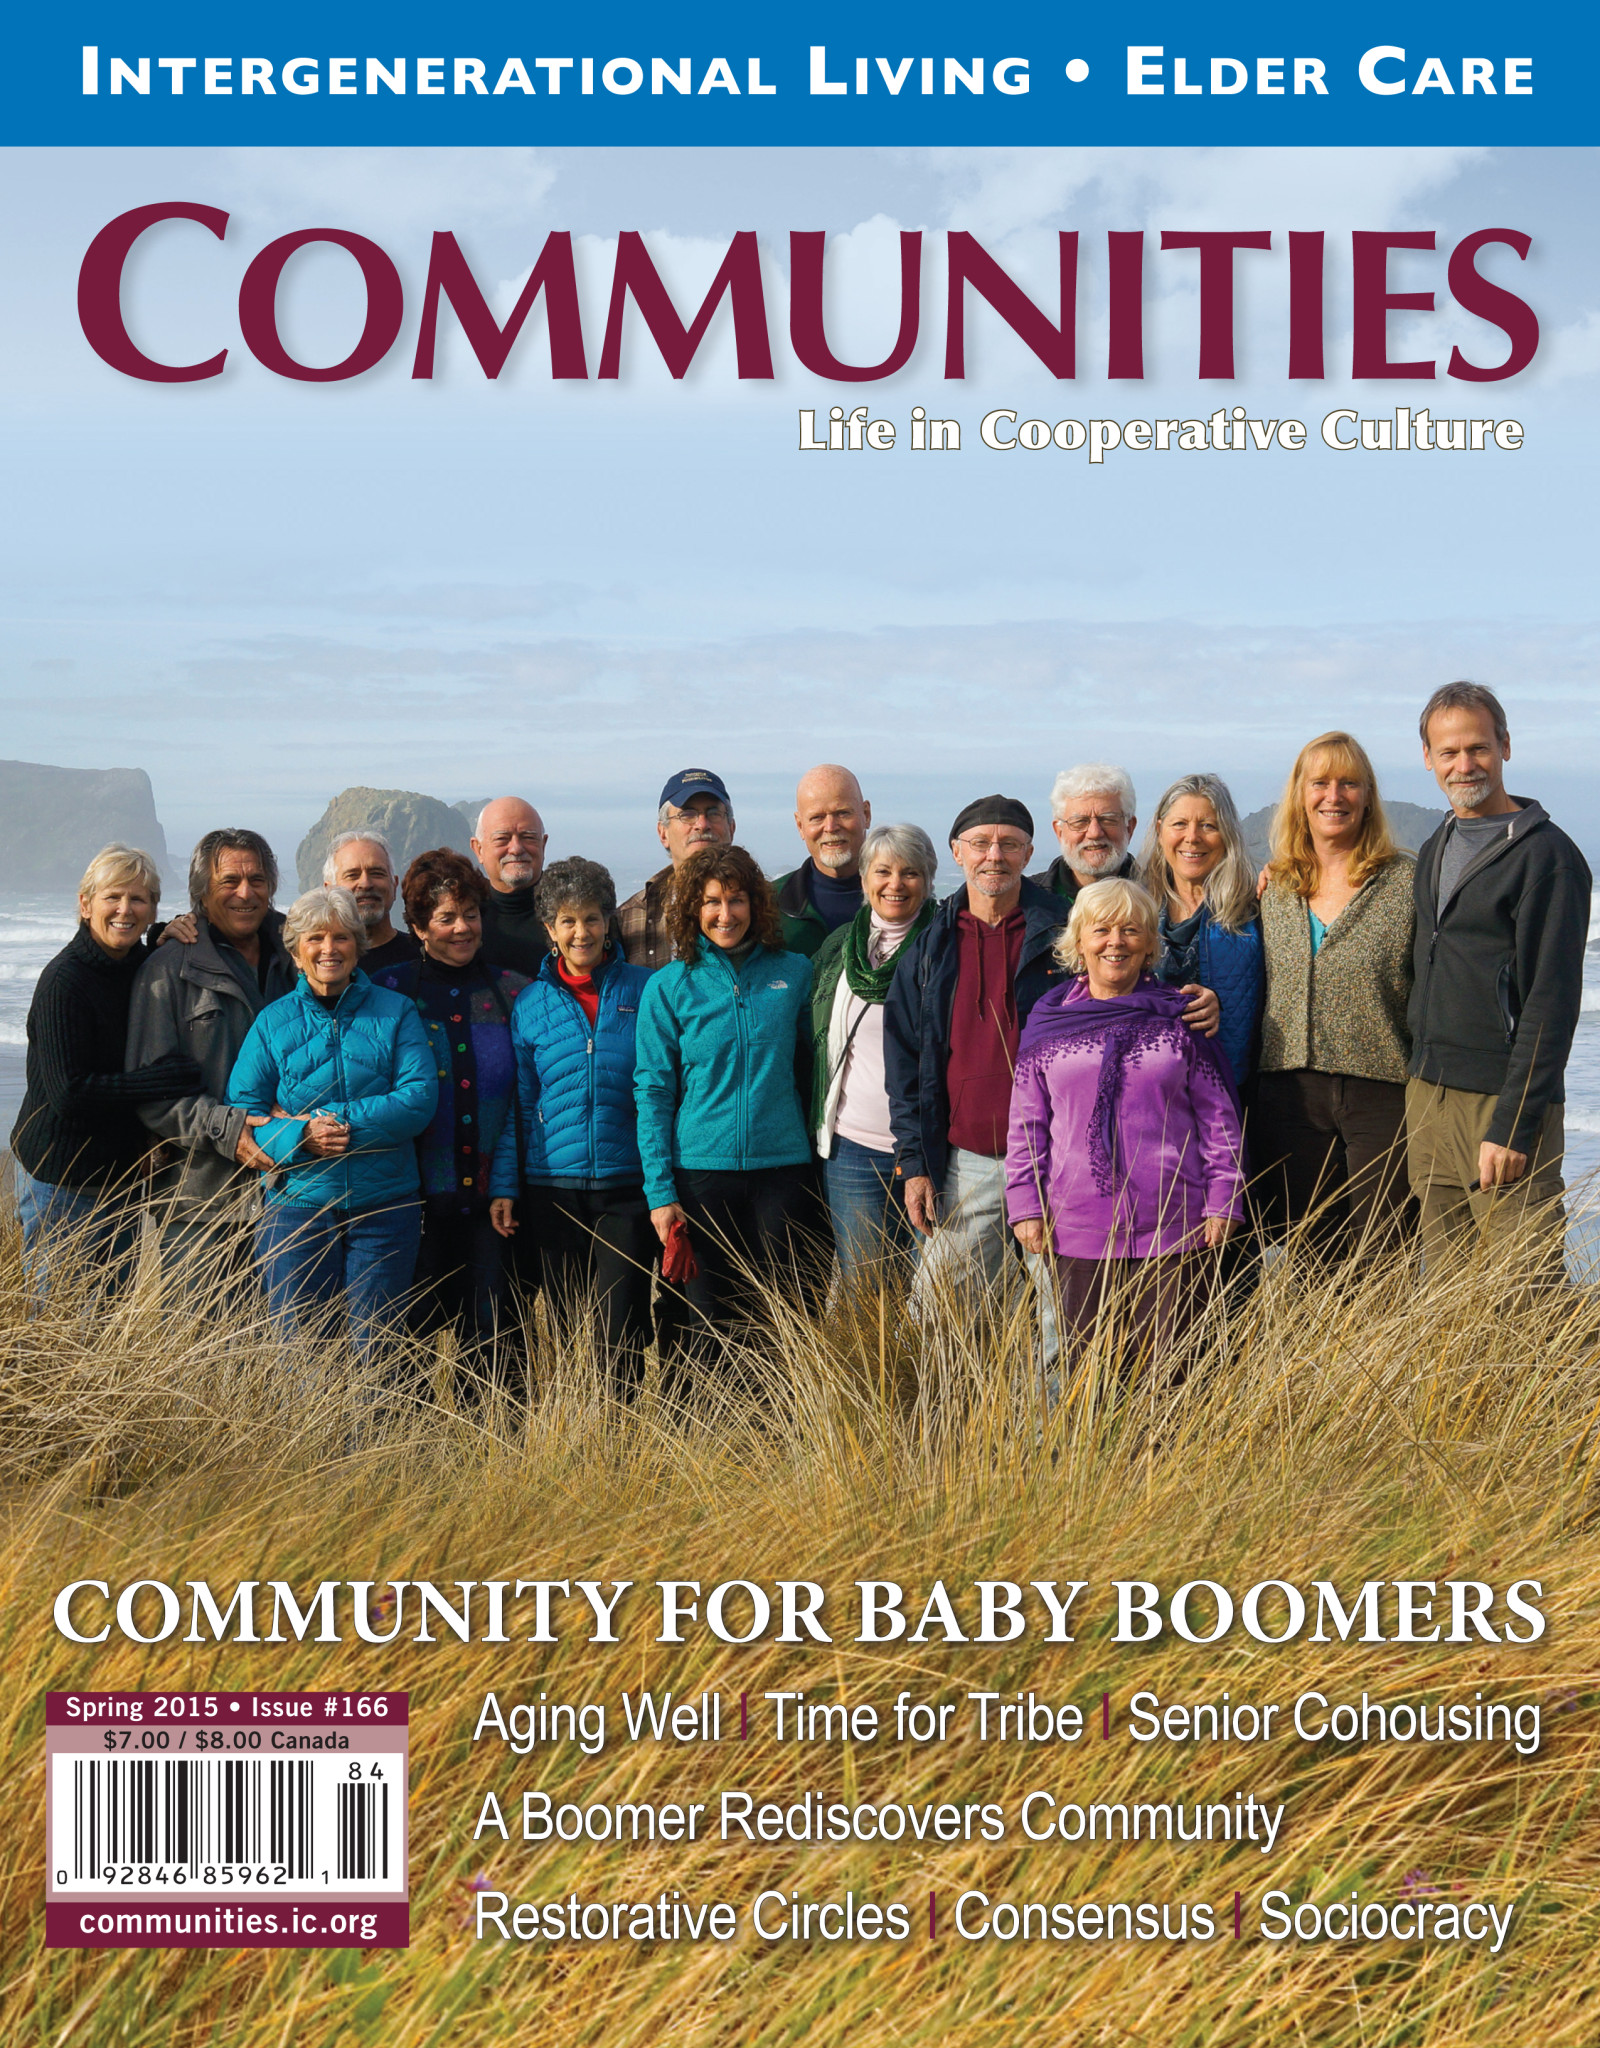 Communities magazine #166